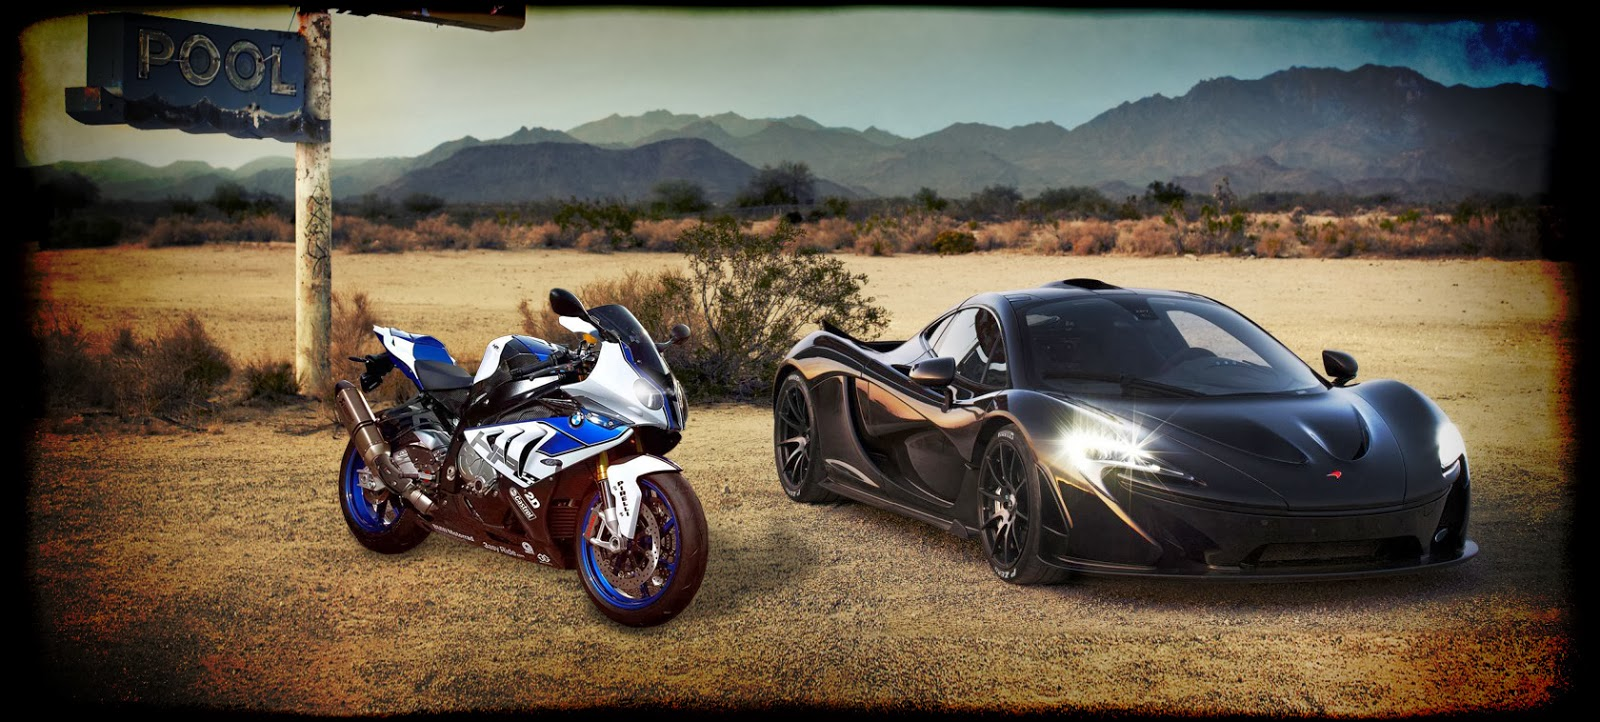 cars versus motorcycles Hi, my name is jace i have been having lots of thoughts about what i need to get in terms of transportation i am going to just say it, i have.